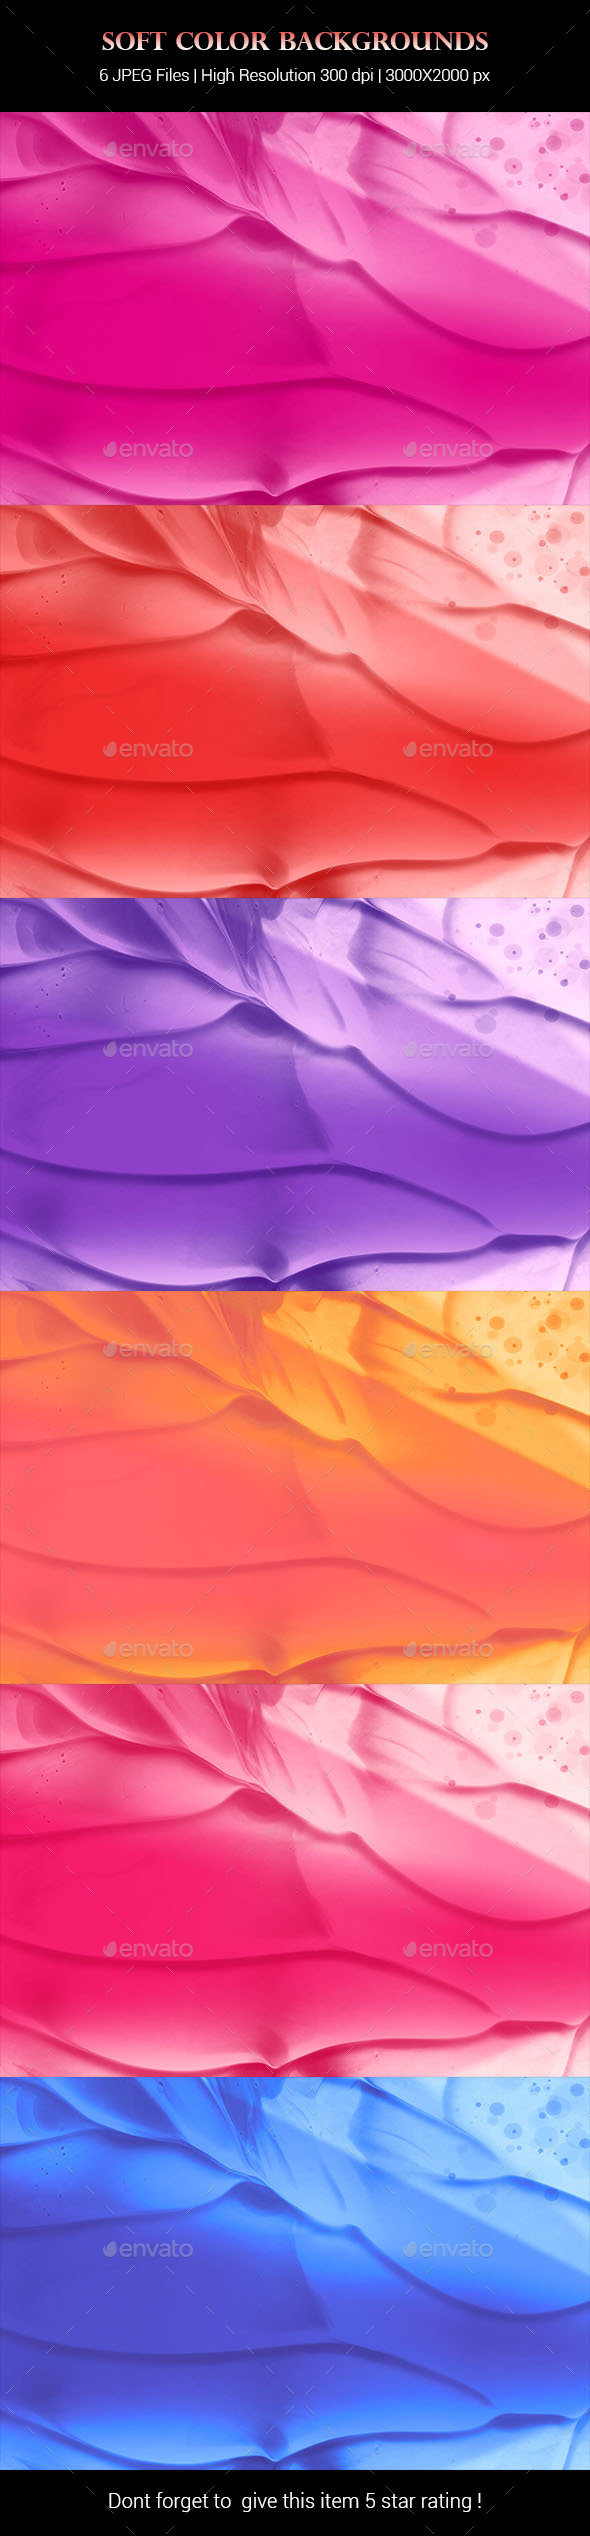 Soft Color Backgrounds - Backgrounds Graphics